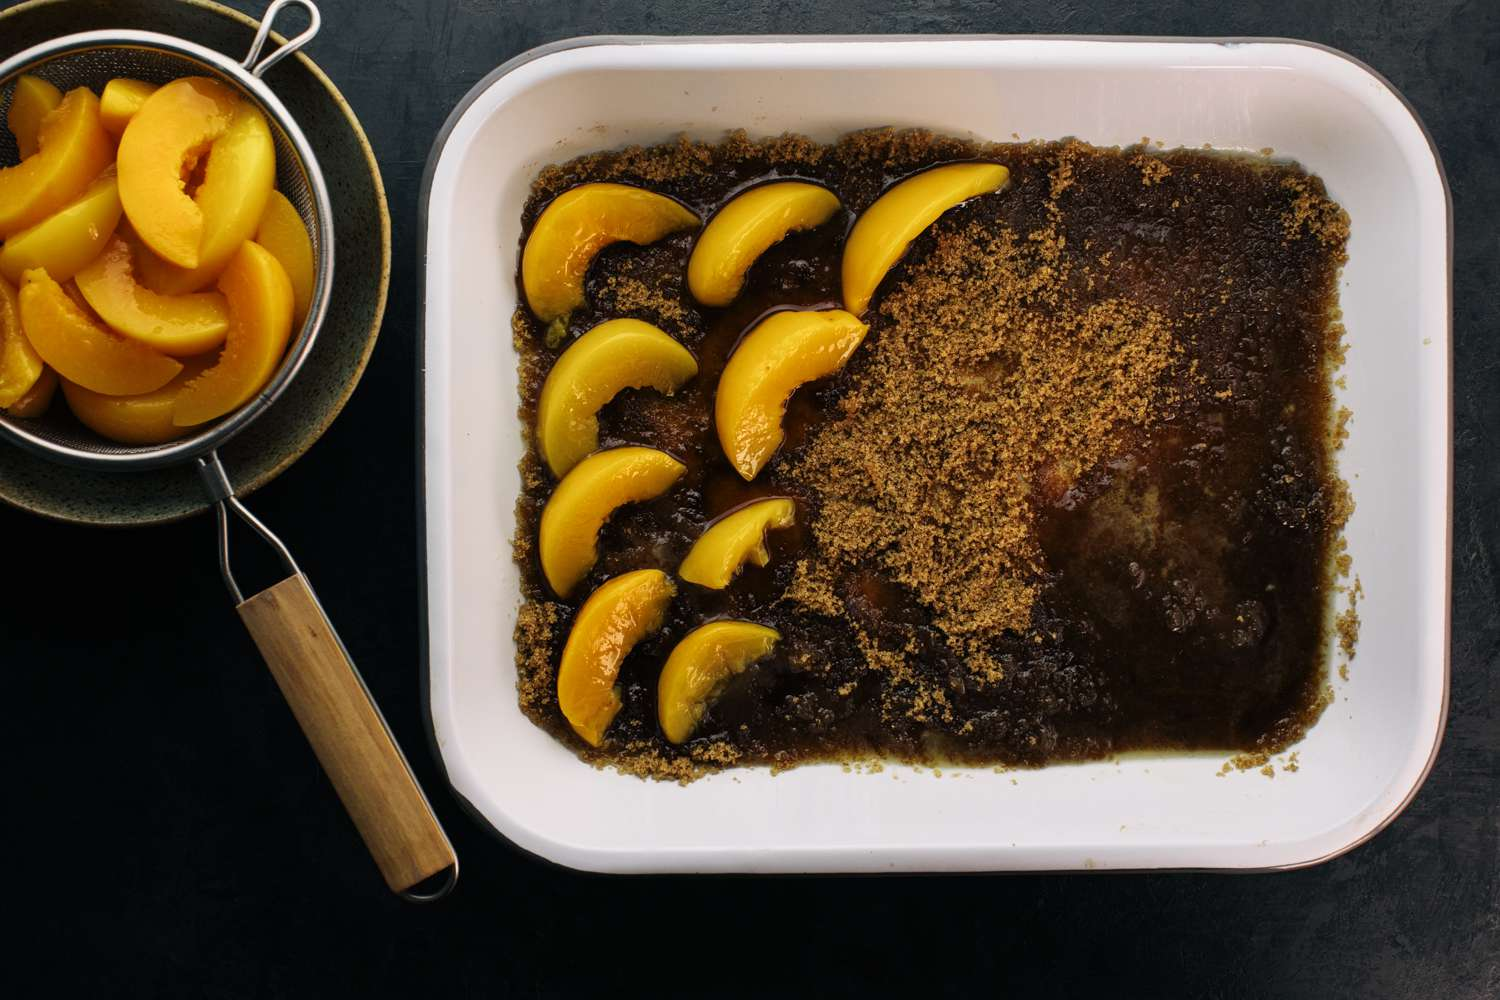 peach slices on top of the brown sugar in a baking pan